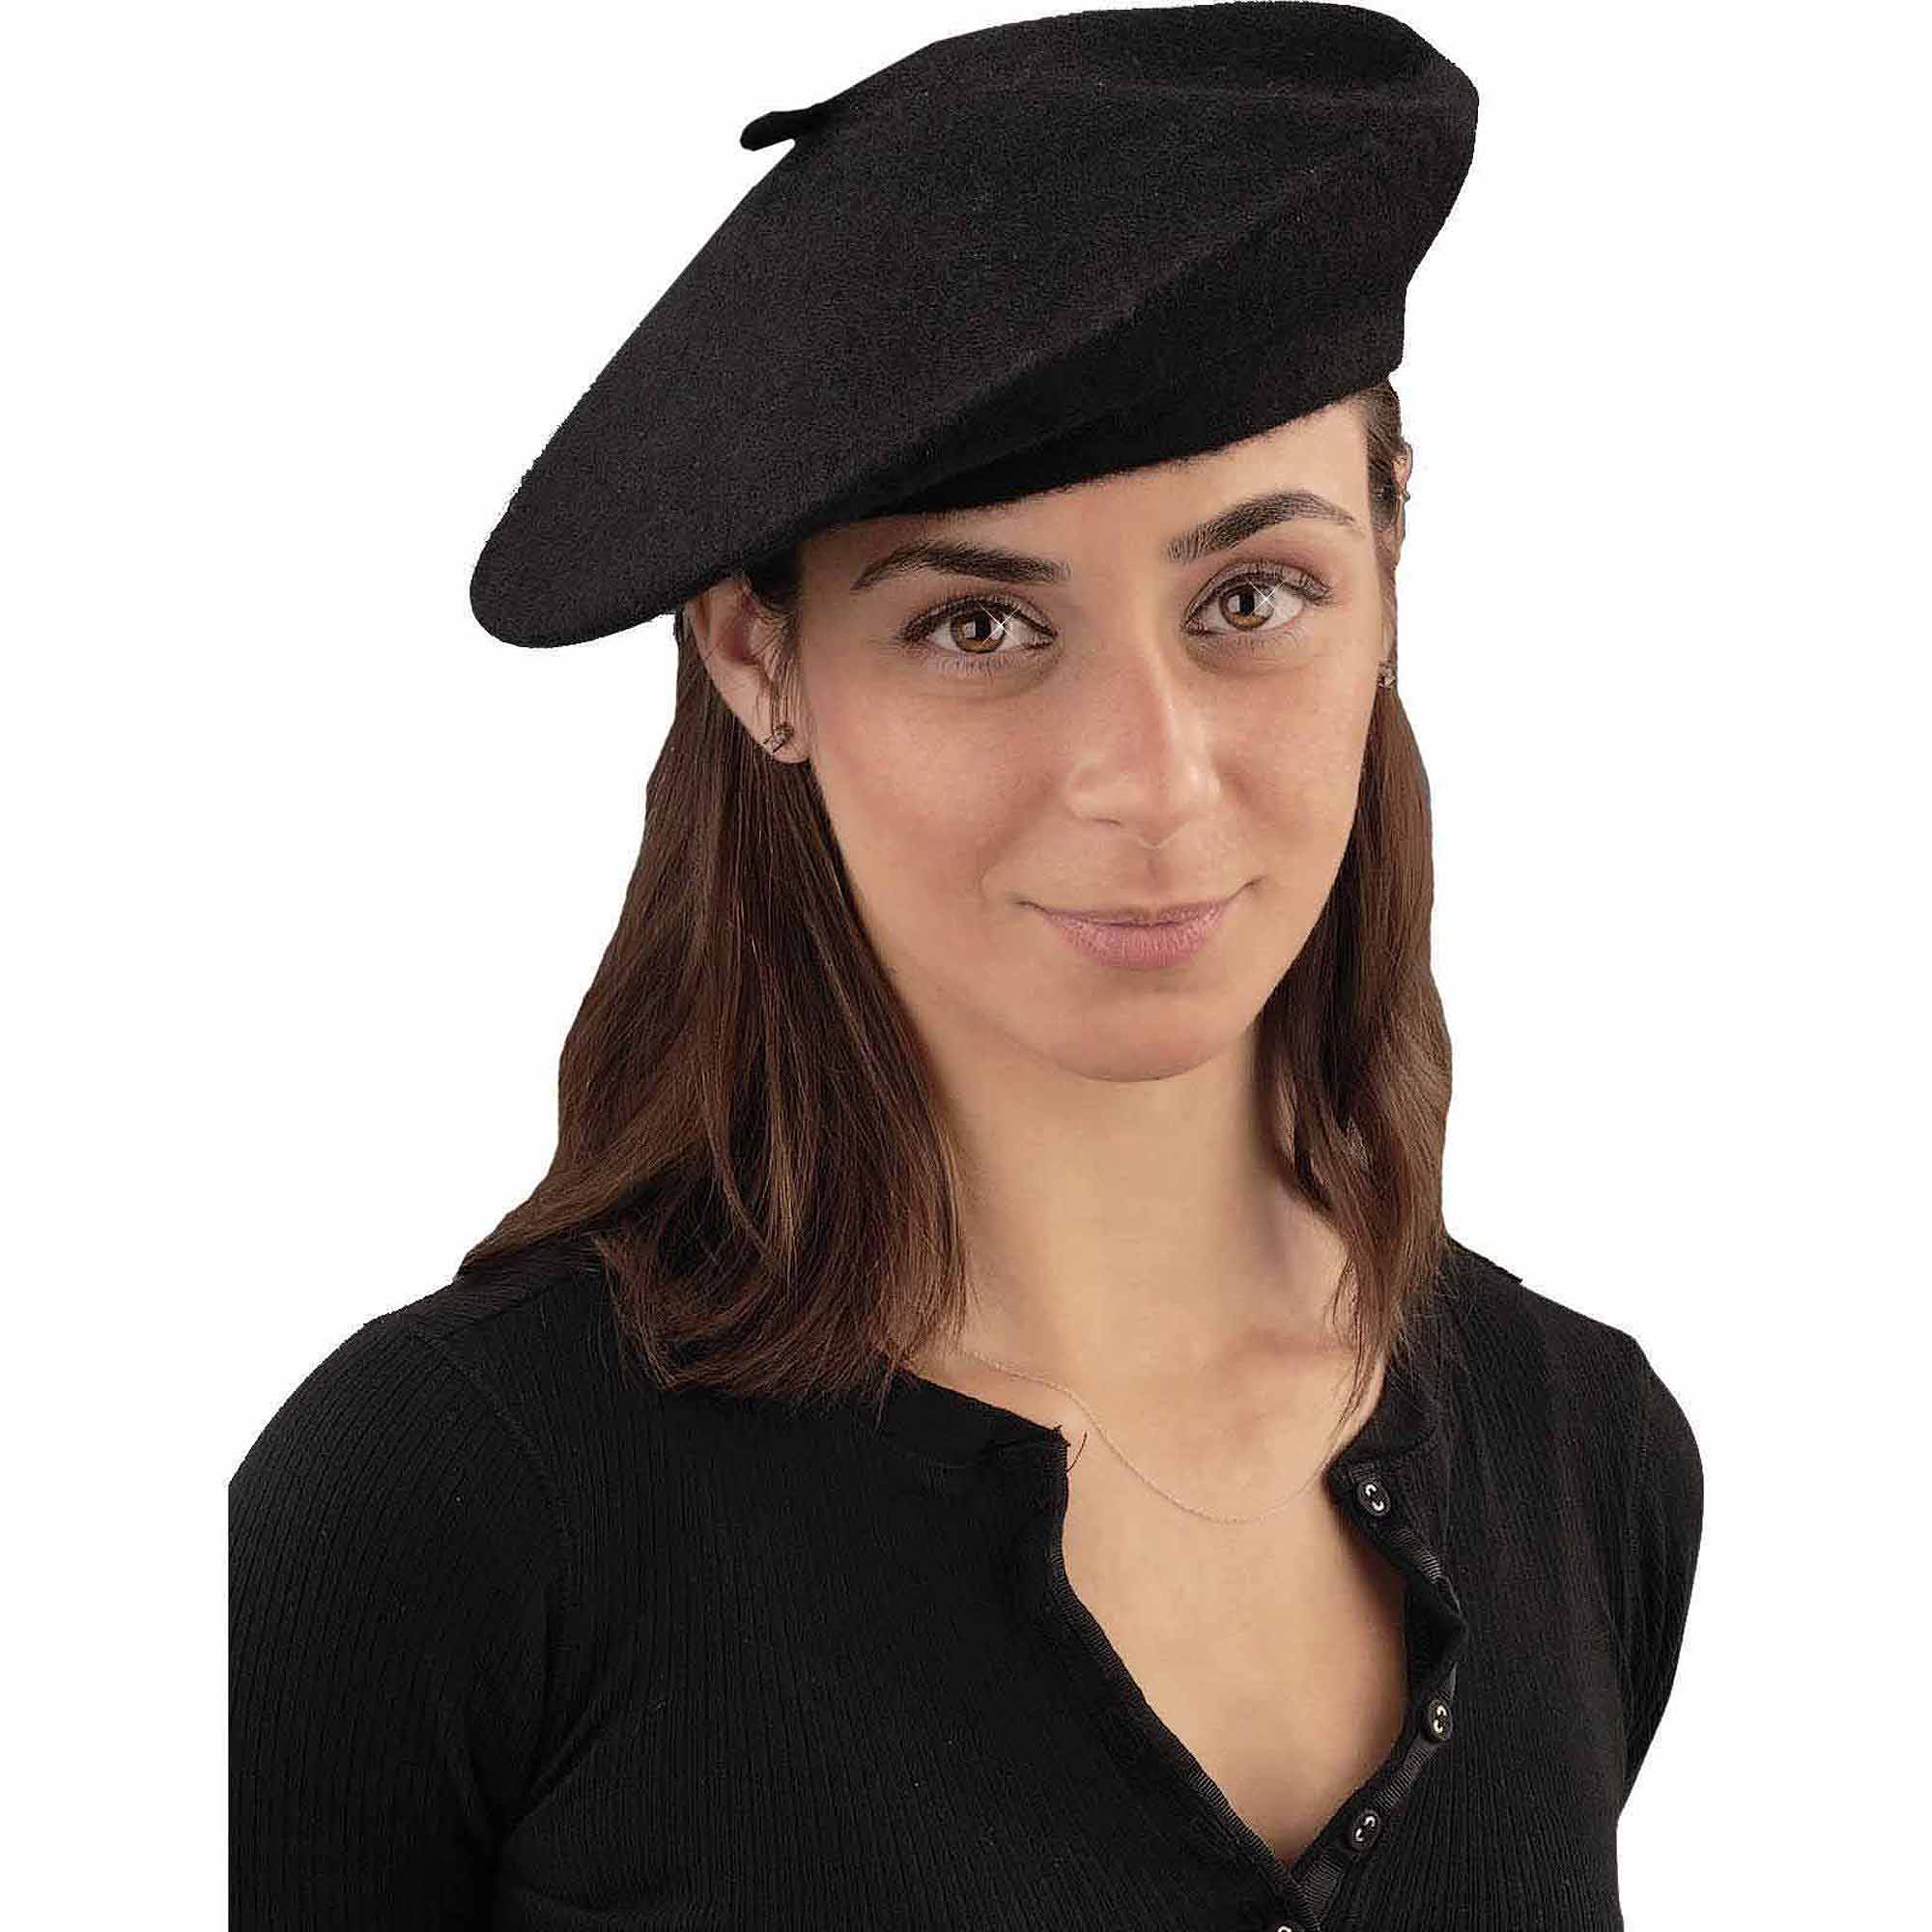 Accessorize with beret hats!